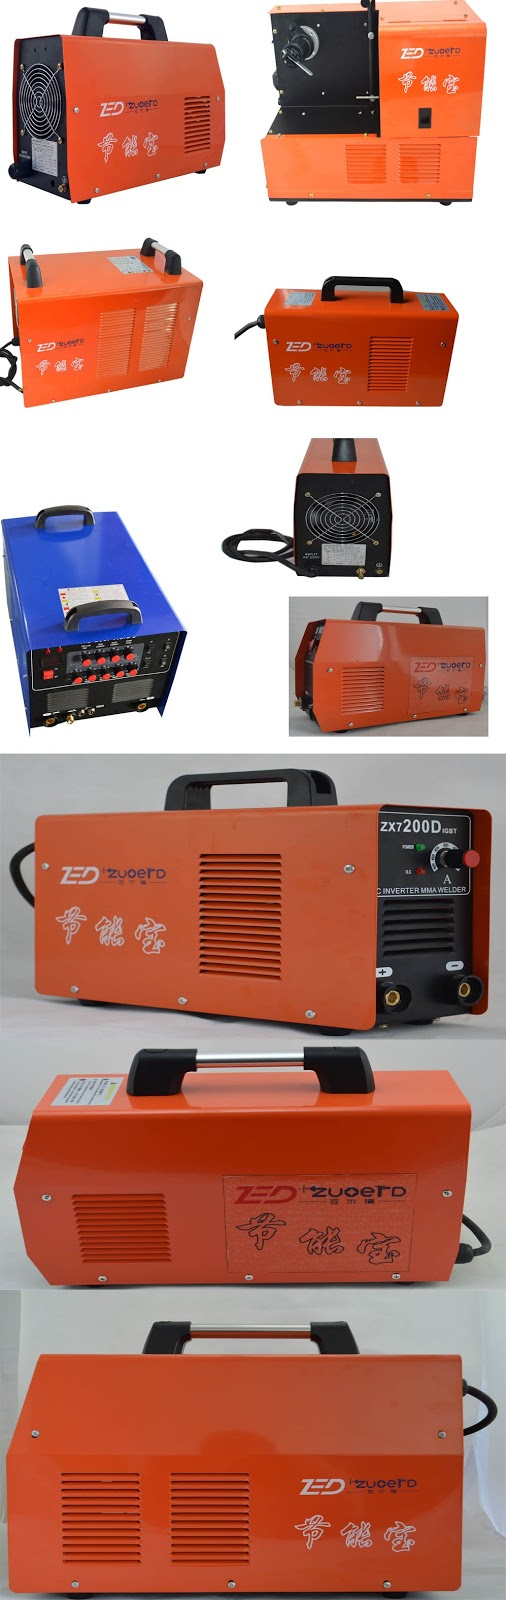 Hand Tools Electric Power Mos Dc Inverter Tig Welder Igbt Gas Welding Pcb Board Cutting Machine Circuit Industry Shielded Air Plasma Manual Arc